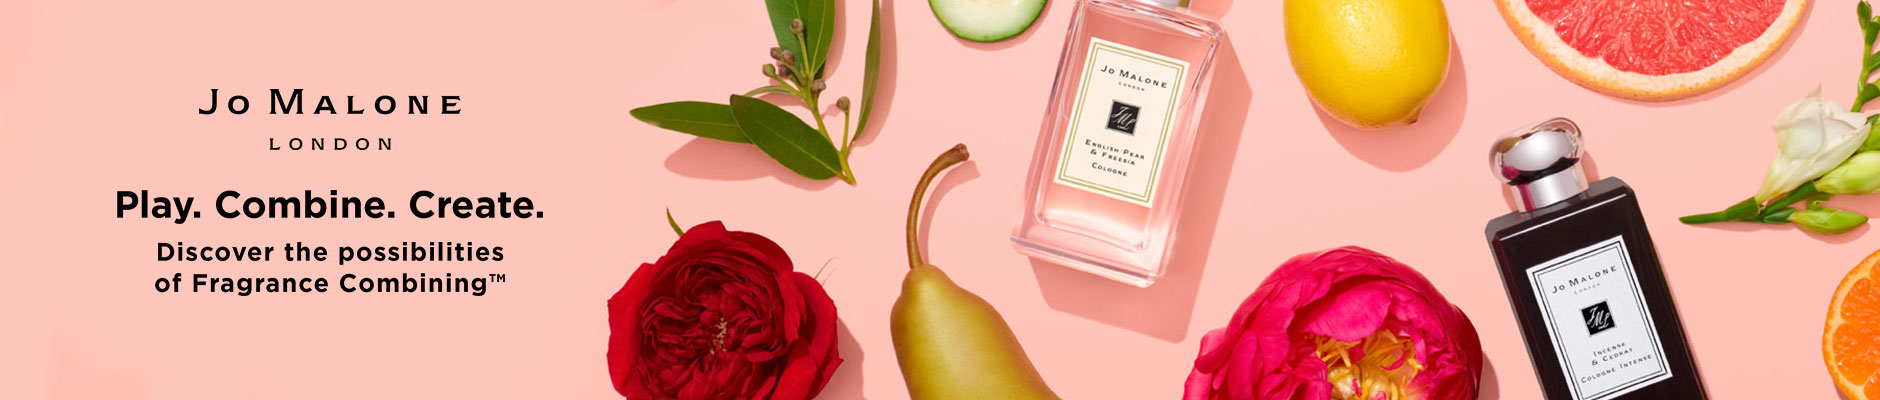 Jo Malone London: Play. Combine. Create. Discover the possibilities of Fragrance Combining